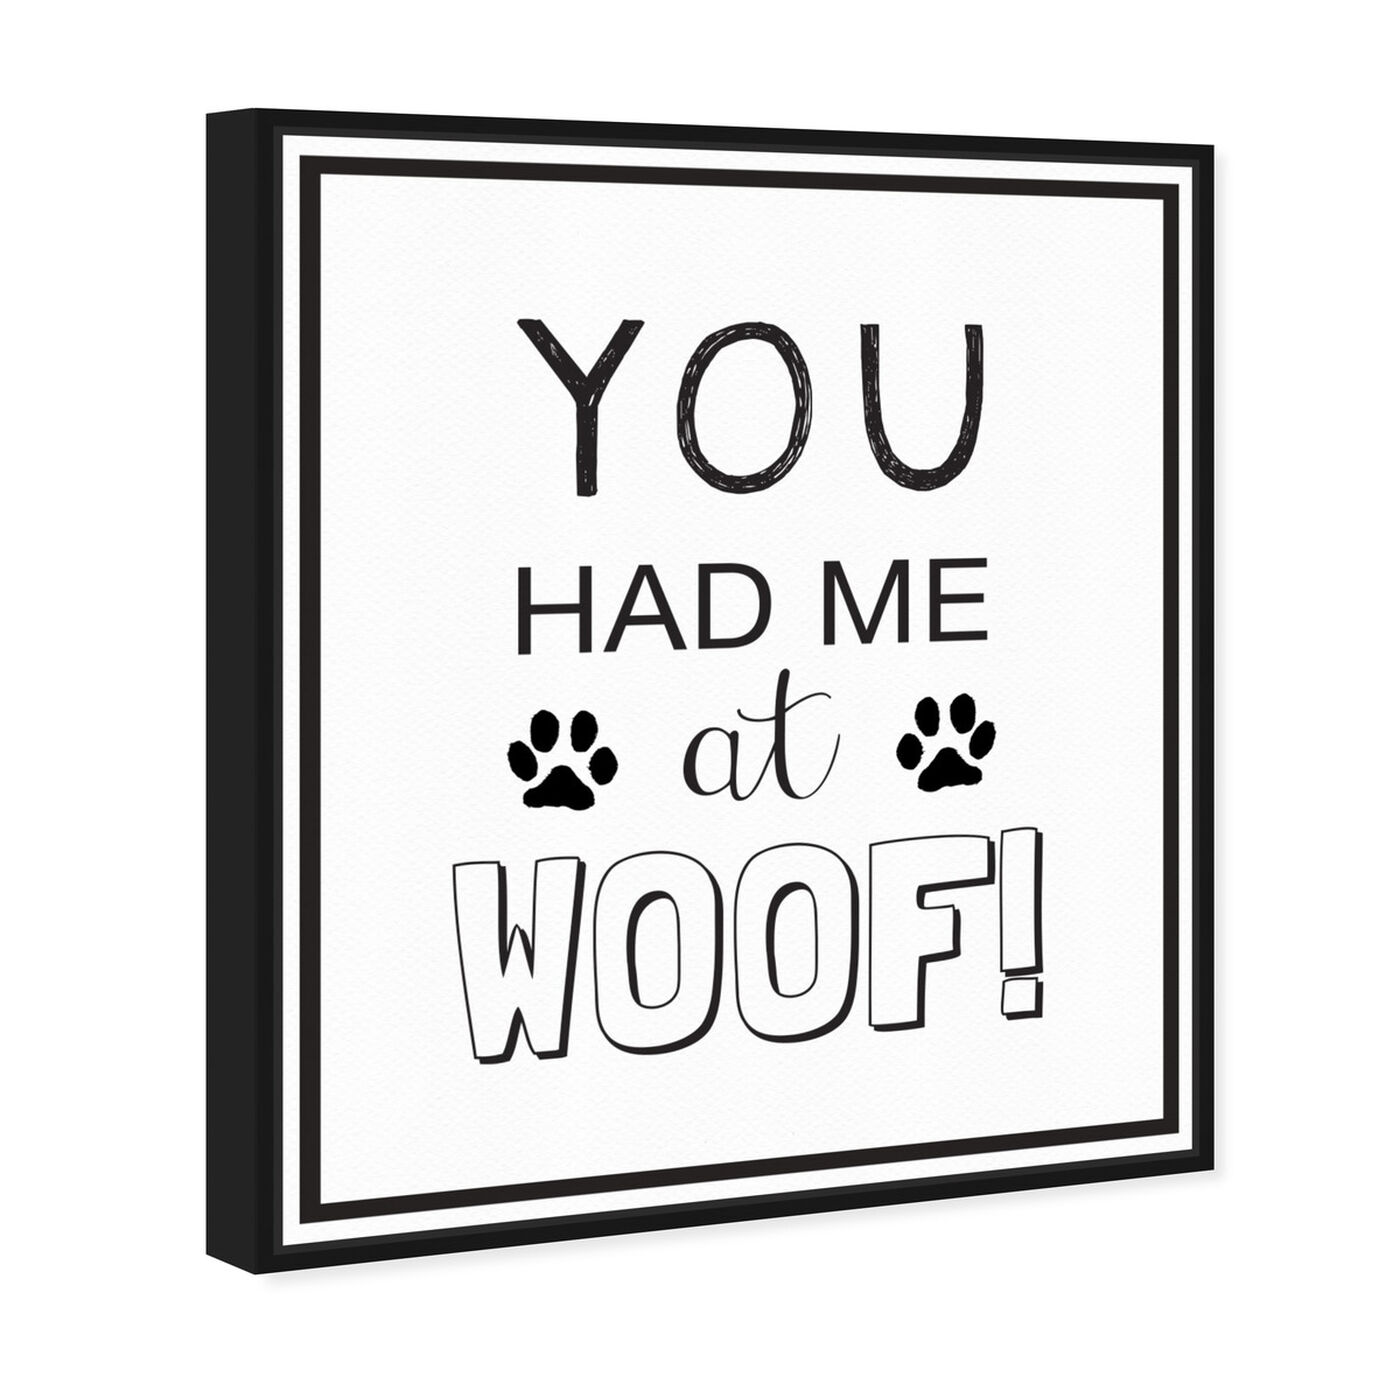 Angled view of Woof featuring typography and quotes and funny quotes and sayings art.